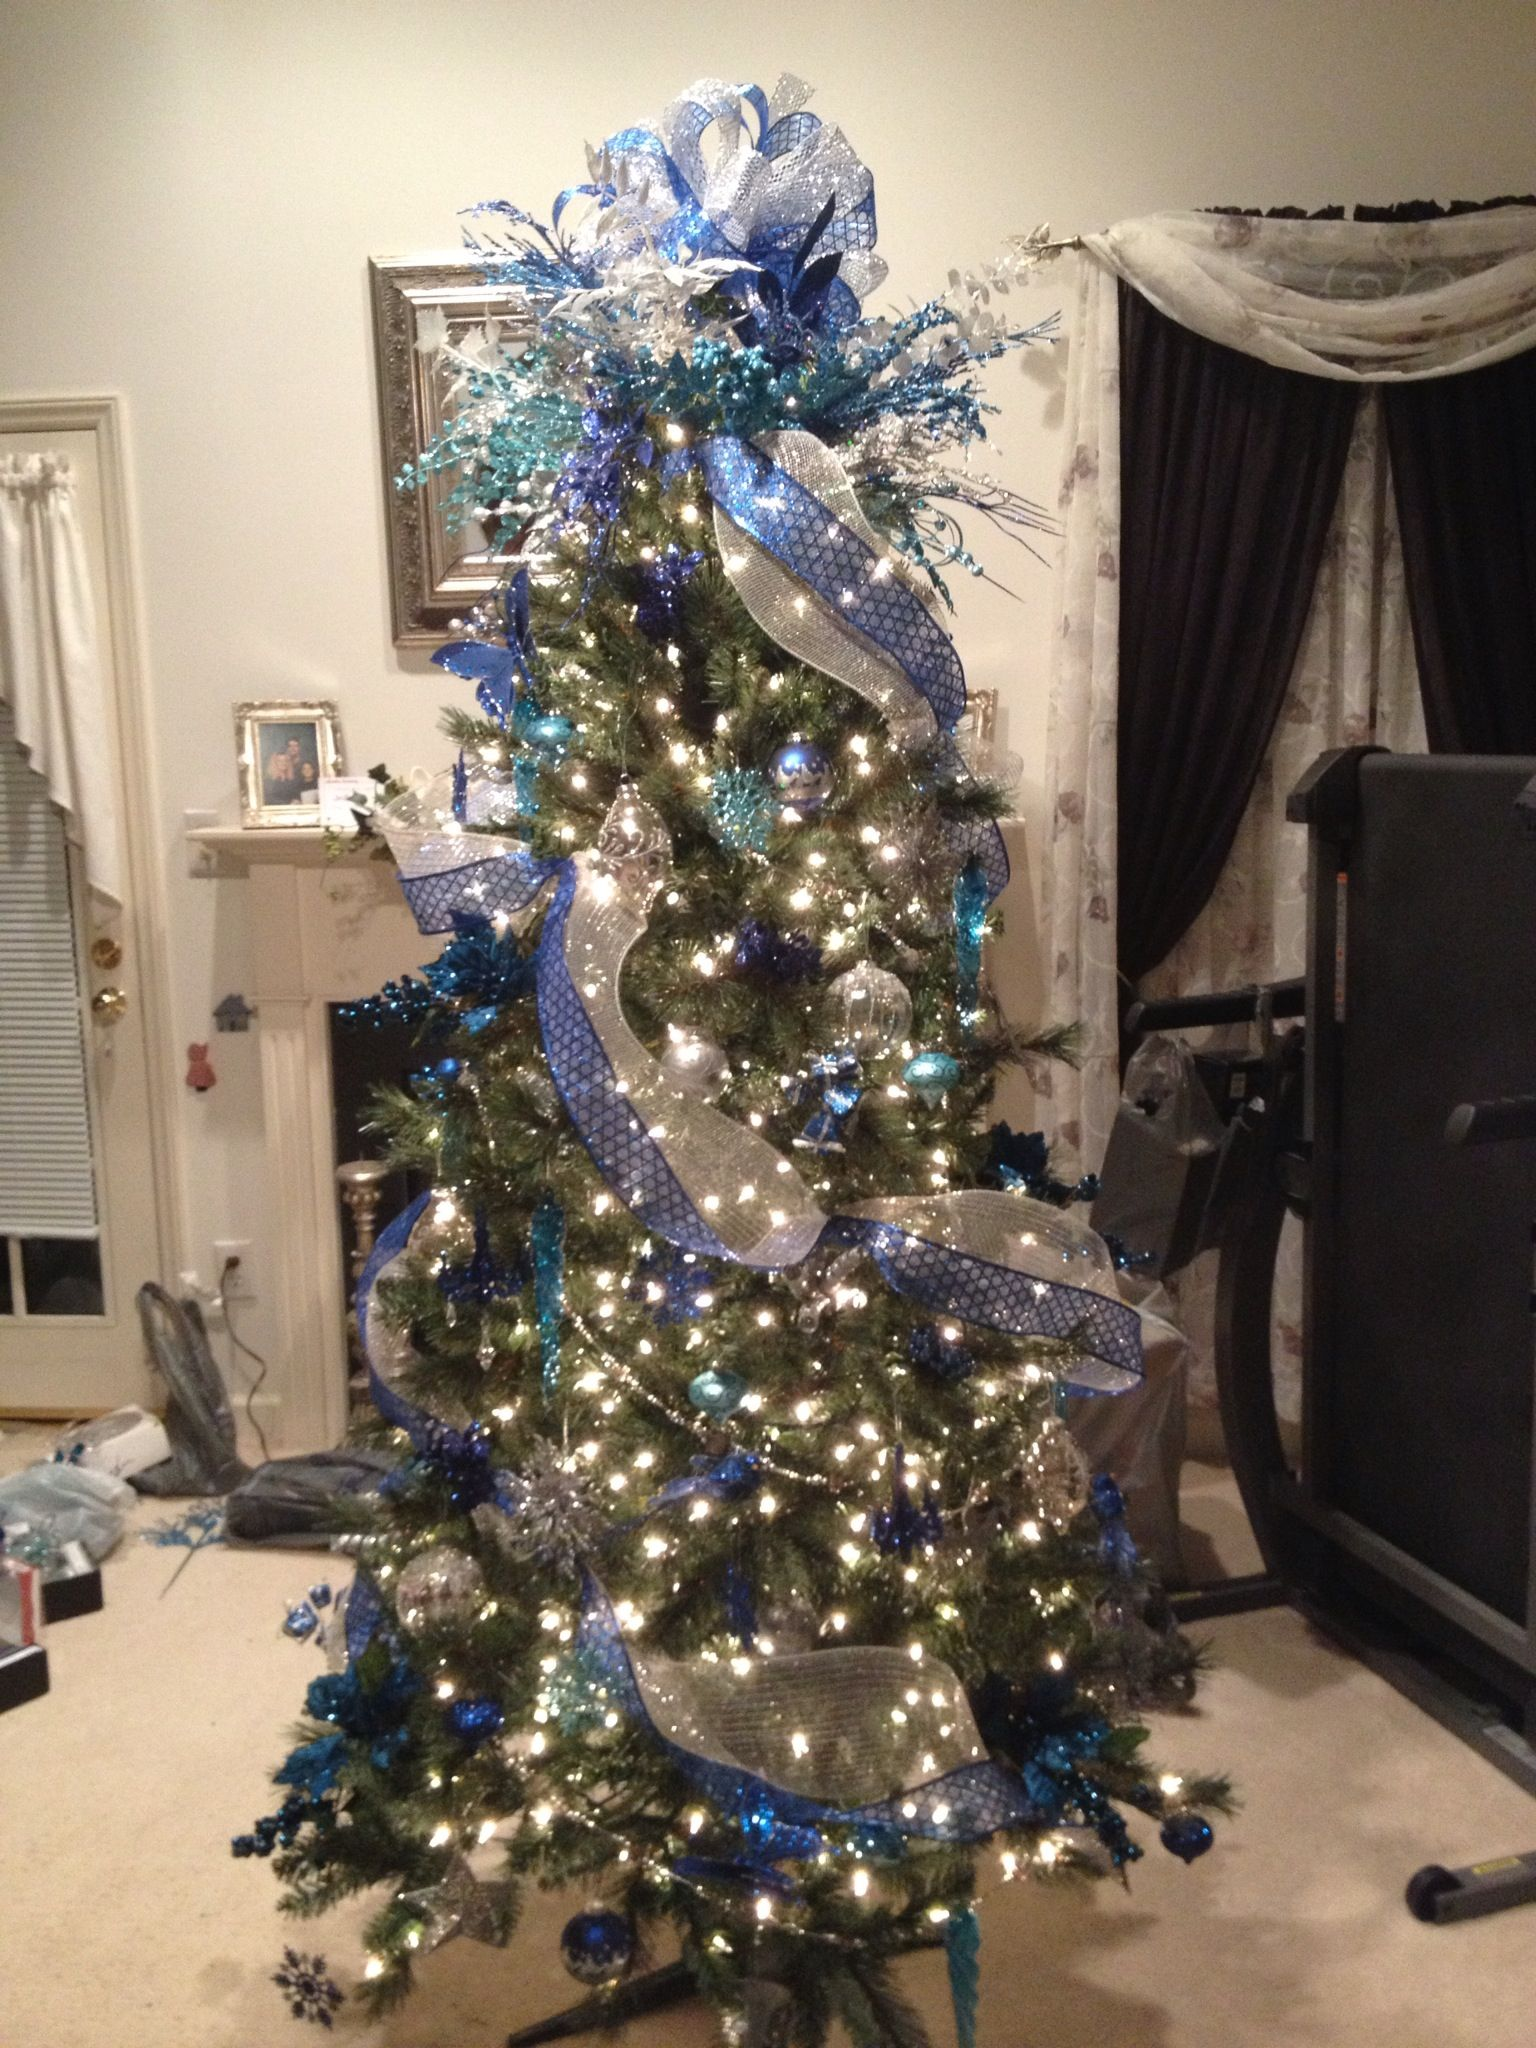 Blue and Silver decorated Christmas Tree I made for a co-worker/friend December 2012.